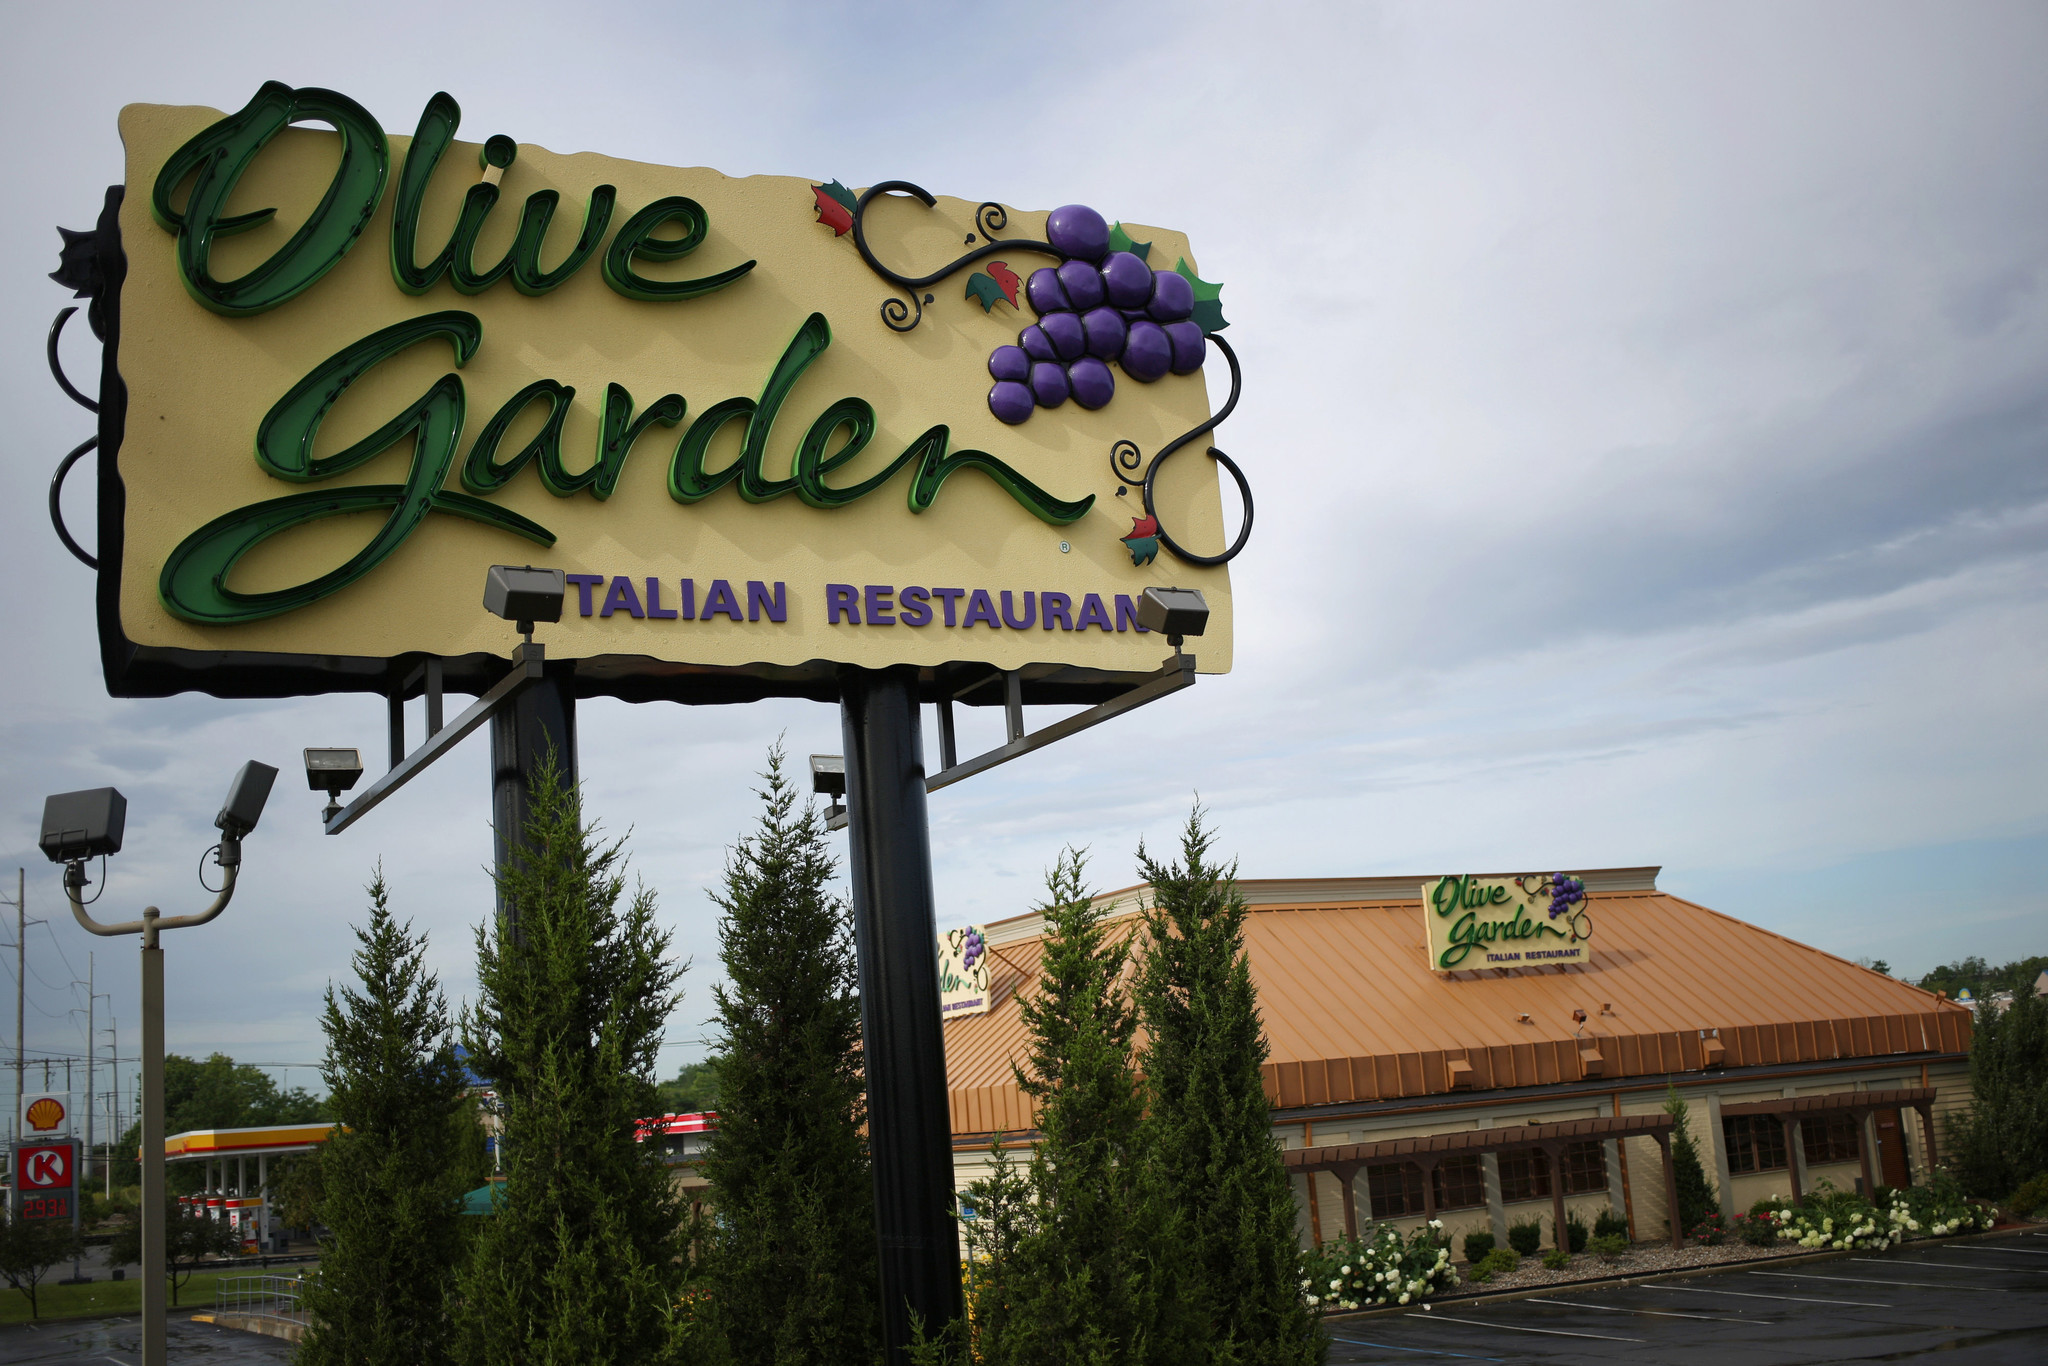 Olive garden to sell 21 000 pasta passes thursday deal now is key tactic chicago tribune for What time does olive garden open